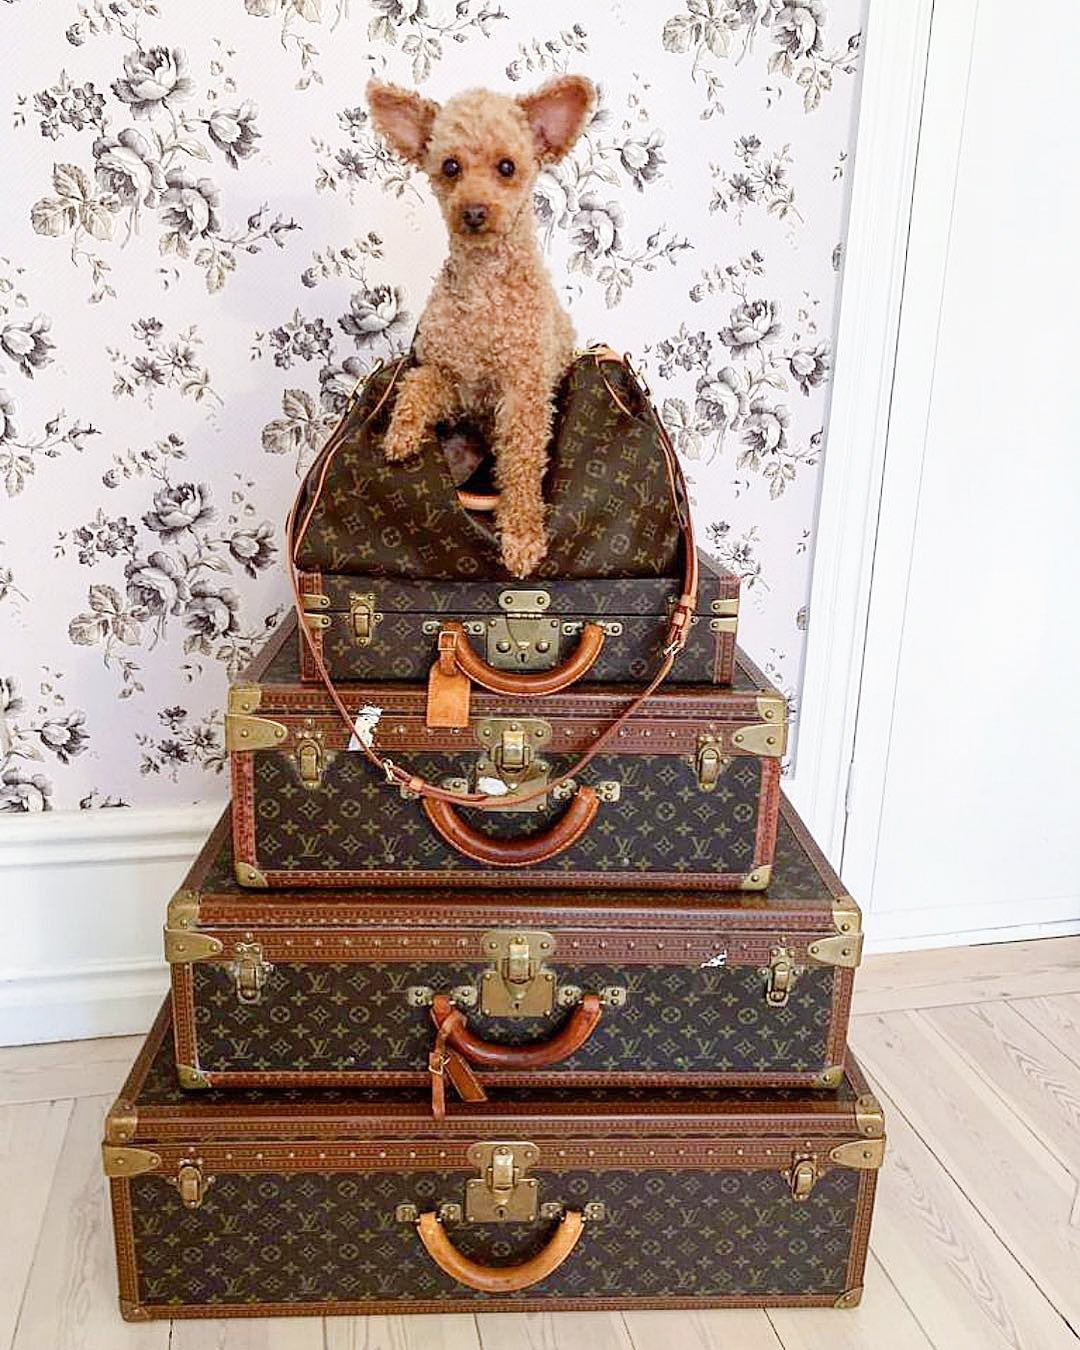 Louis Vuitton trunks stacked